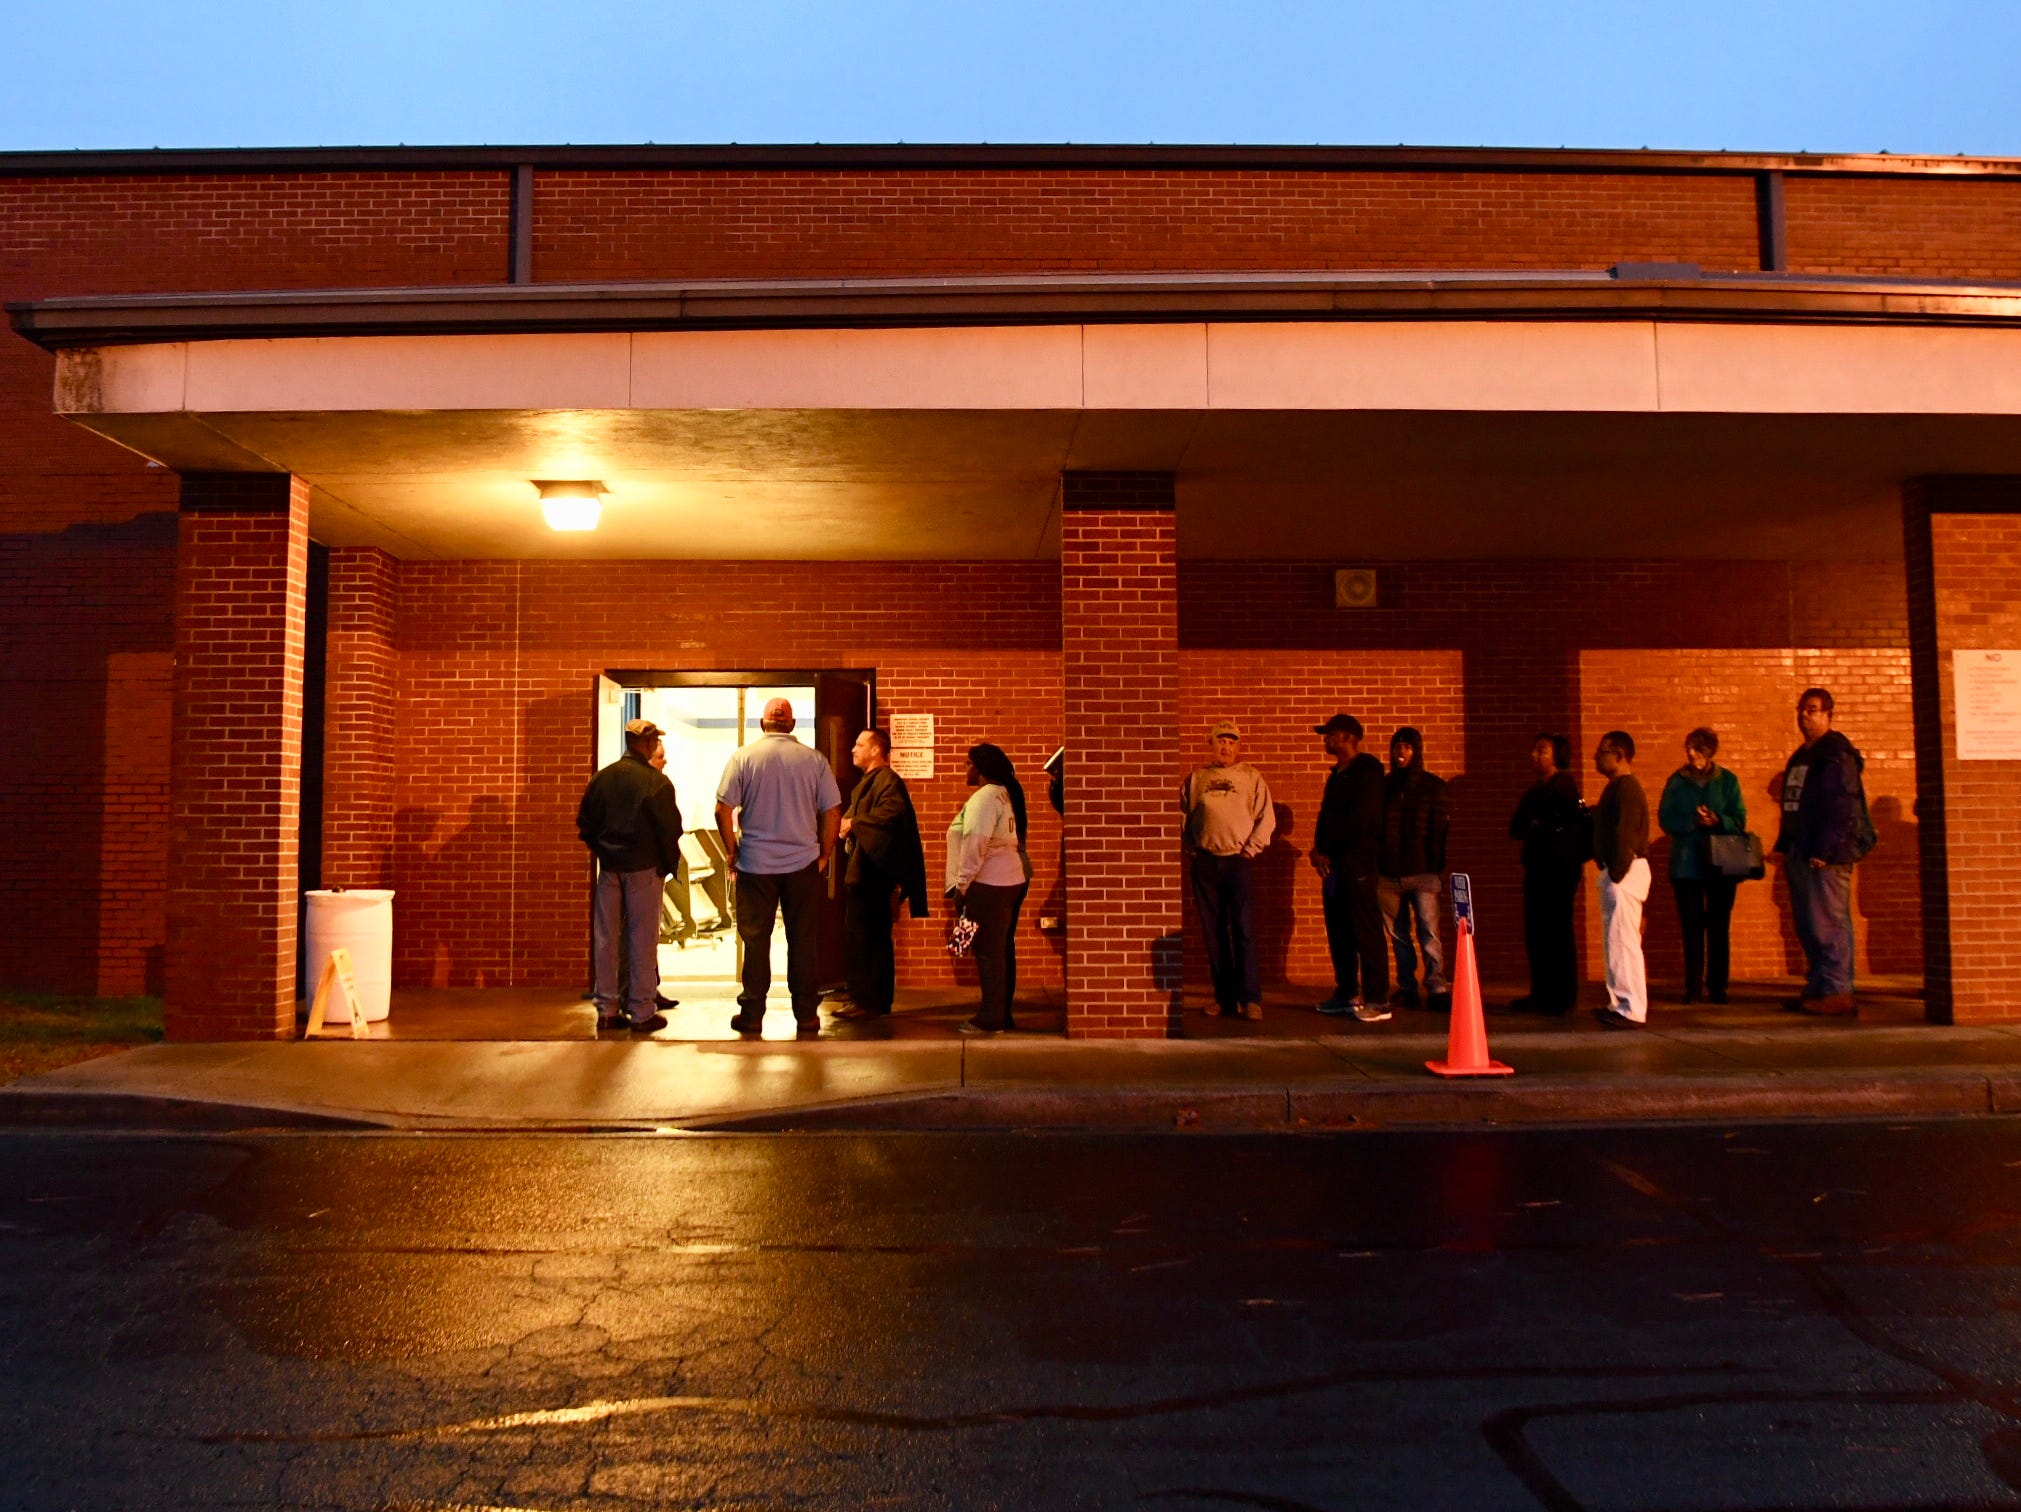 Anderson County voters lined up early Tuesday, Nov. 6, 2018, to cast their ballot as South Carolinians voted in the 2018 midterm elections.